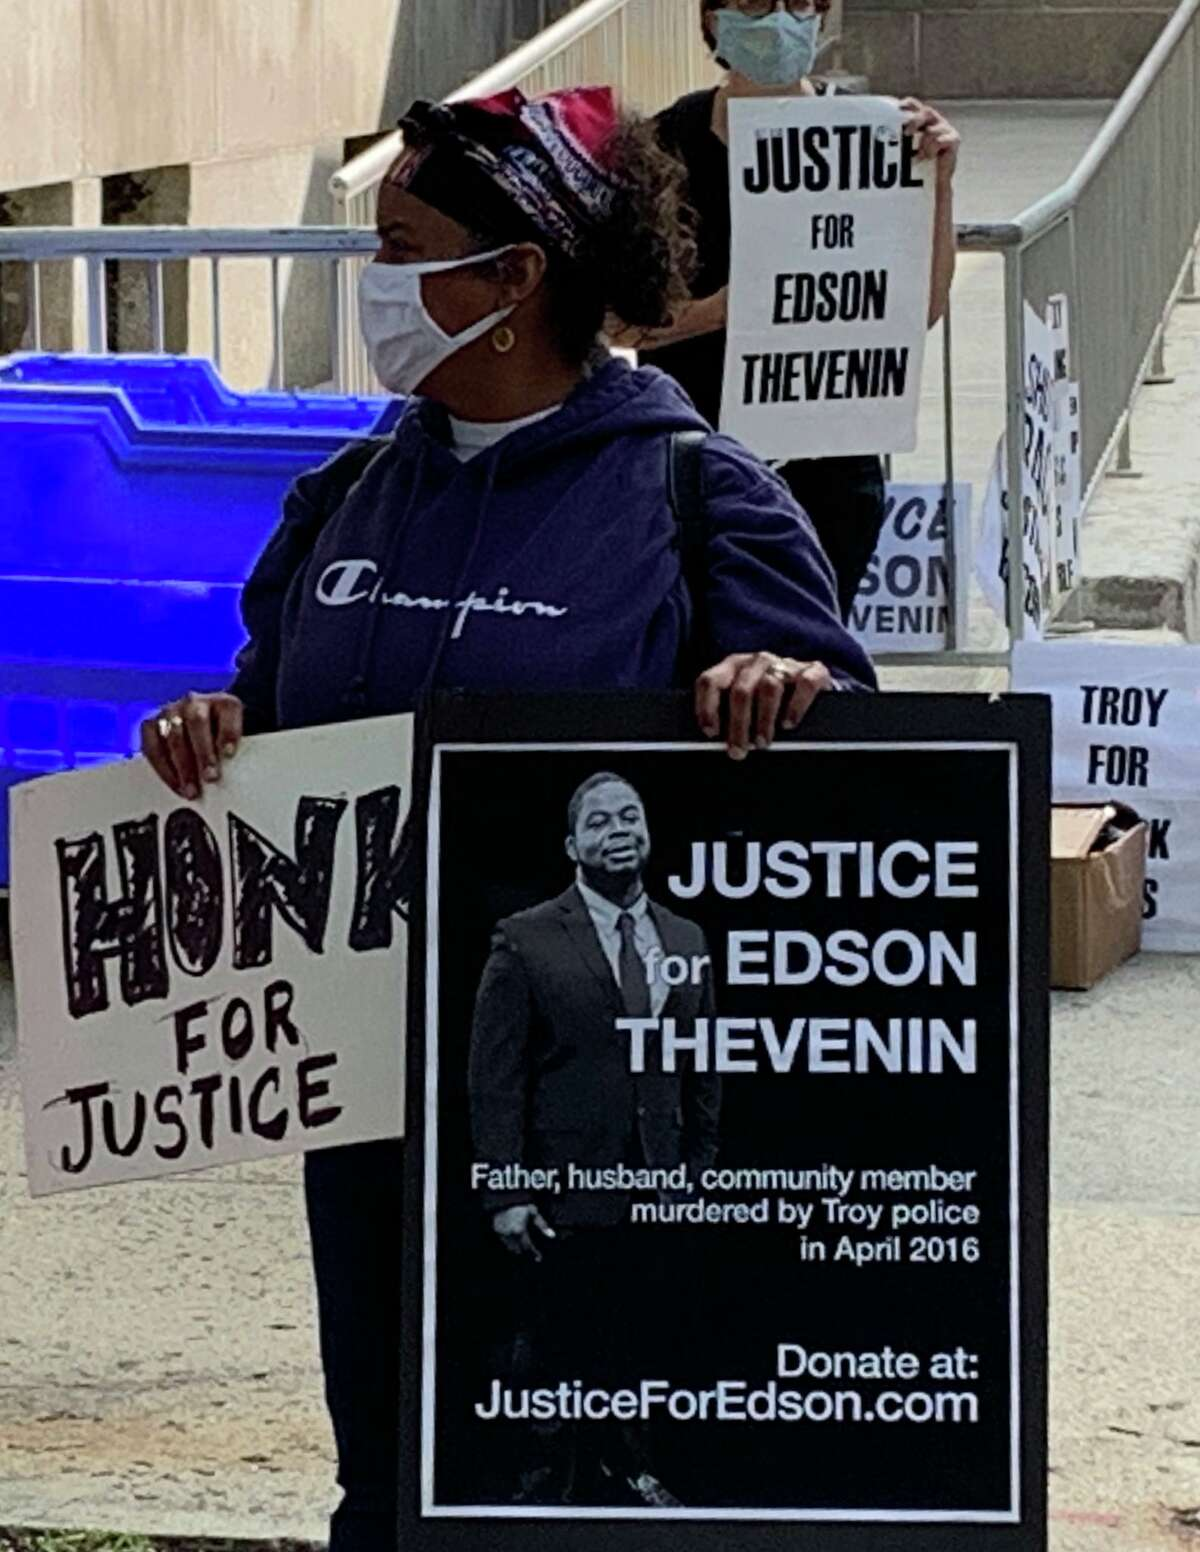 Protesters hold signs outside Rensselaer County Court on Monday. Opening statements begin Tuesday in the trial of former Rensselaer County District Attorney Joel Abelove, who is charged with first-degree perjury, a felony, and charges of official misconduct, a misdemeanor, in connection with his handling of the 2016 fatal police shooting of Edson Thevenin